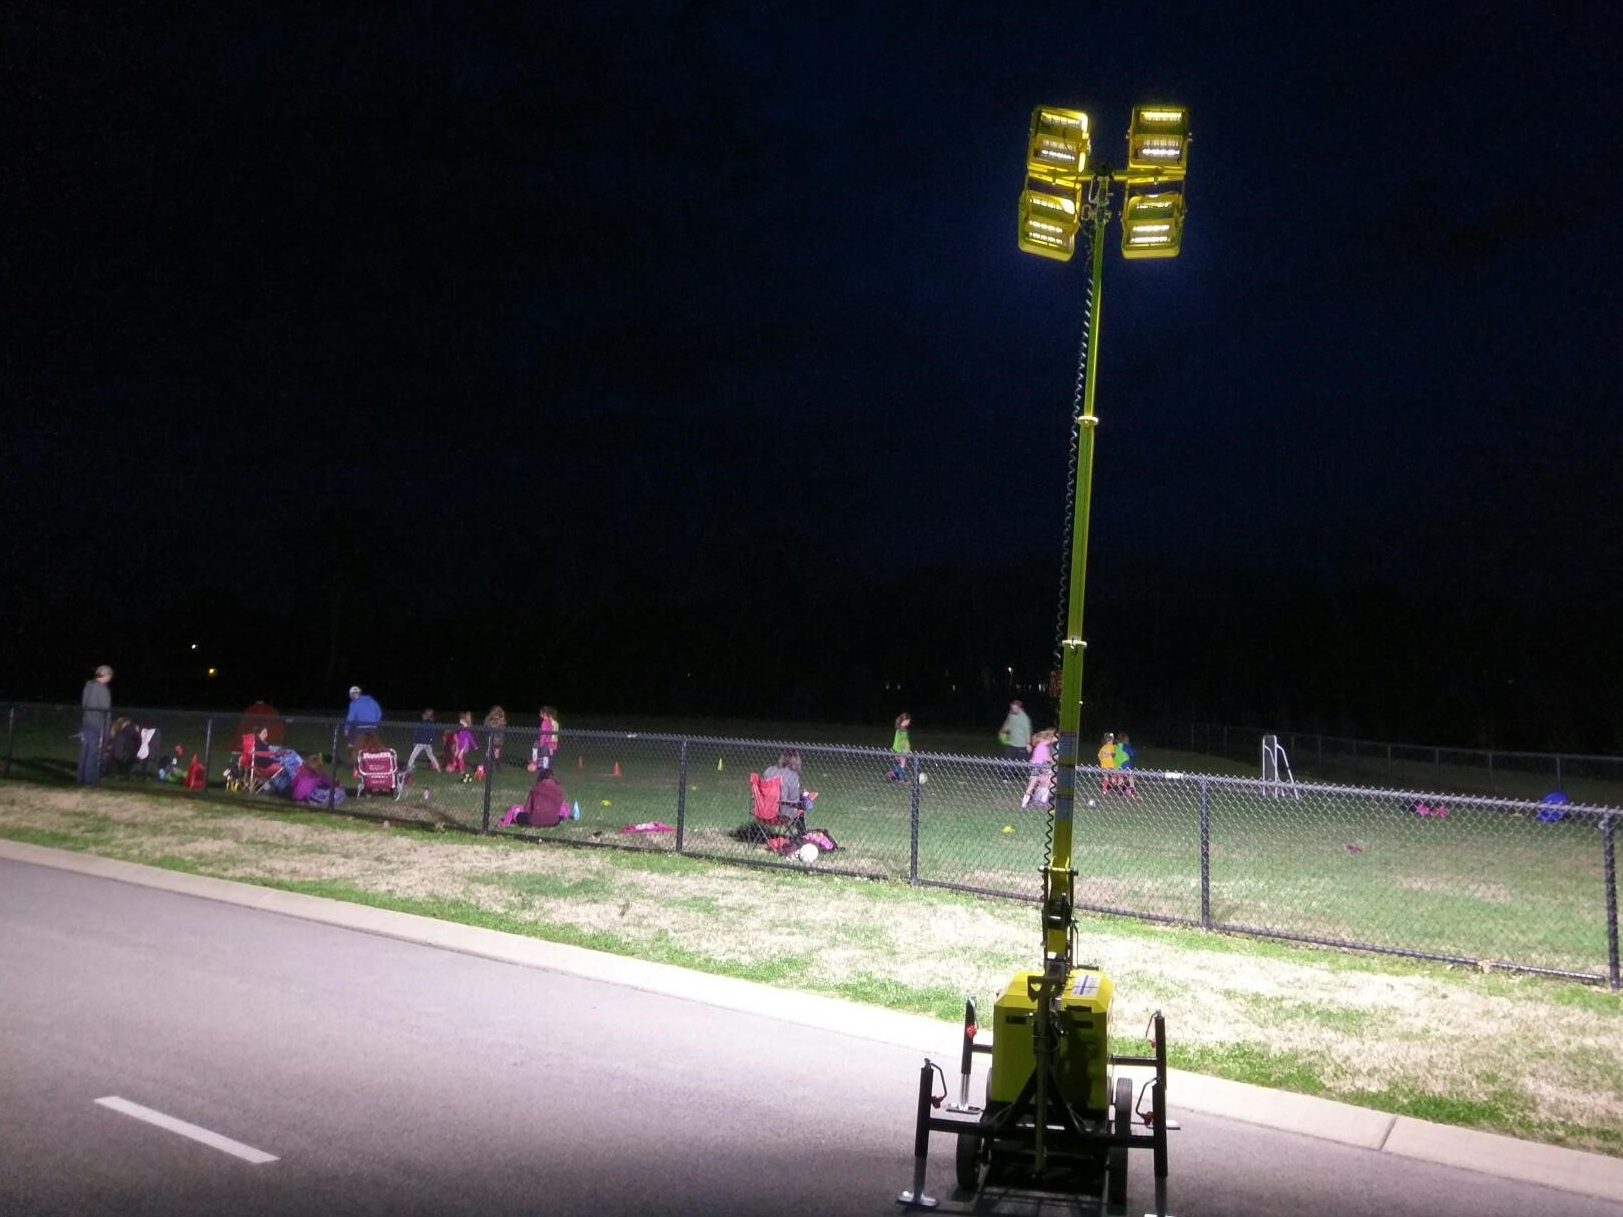 Thank you for filling out a request for our Beacon LED Tower  - Someone will get back to you shortly. If this is urgent please contact 1.877.475.5463 to speak to a representative